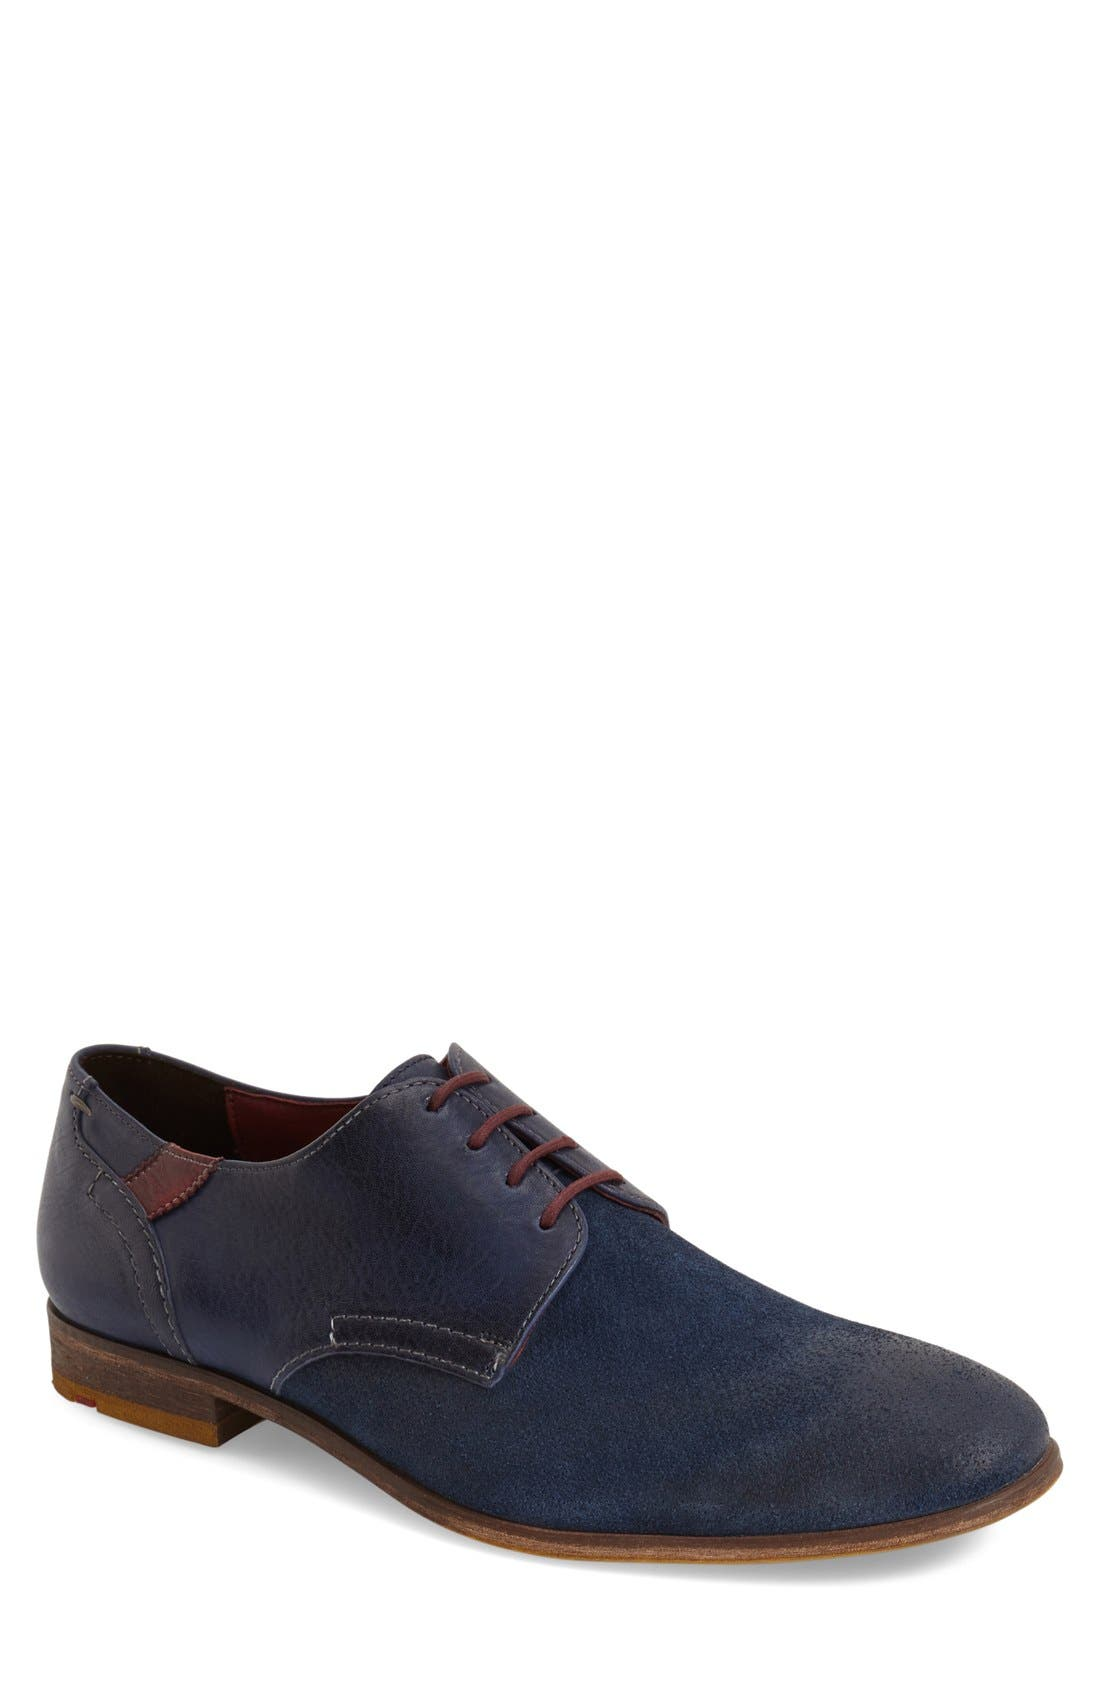 Main Image - Lloyd 'Gardell' Plain Toe Derby (Men)